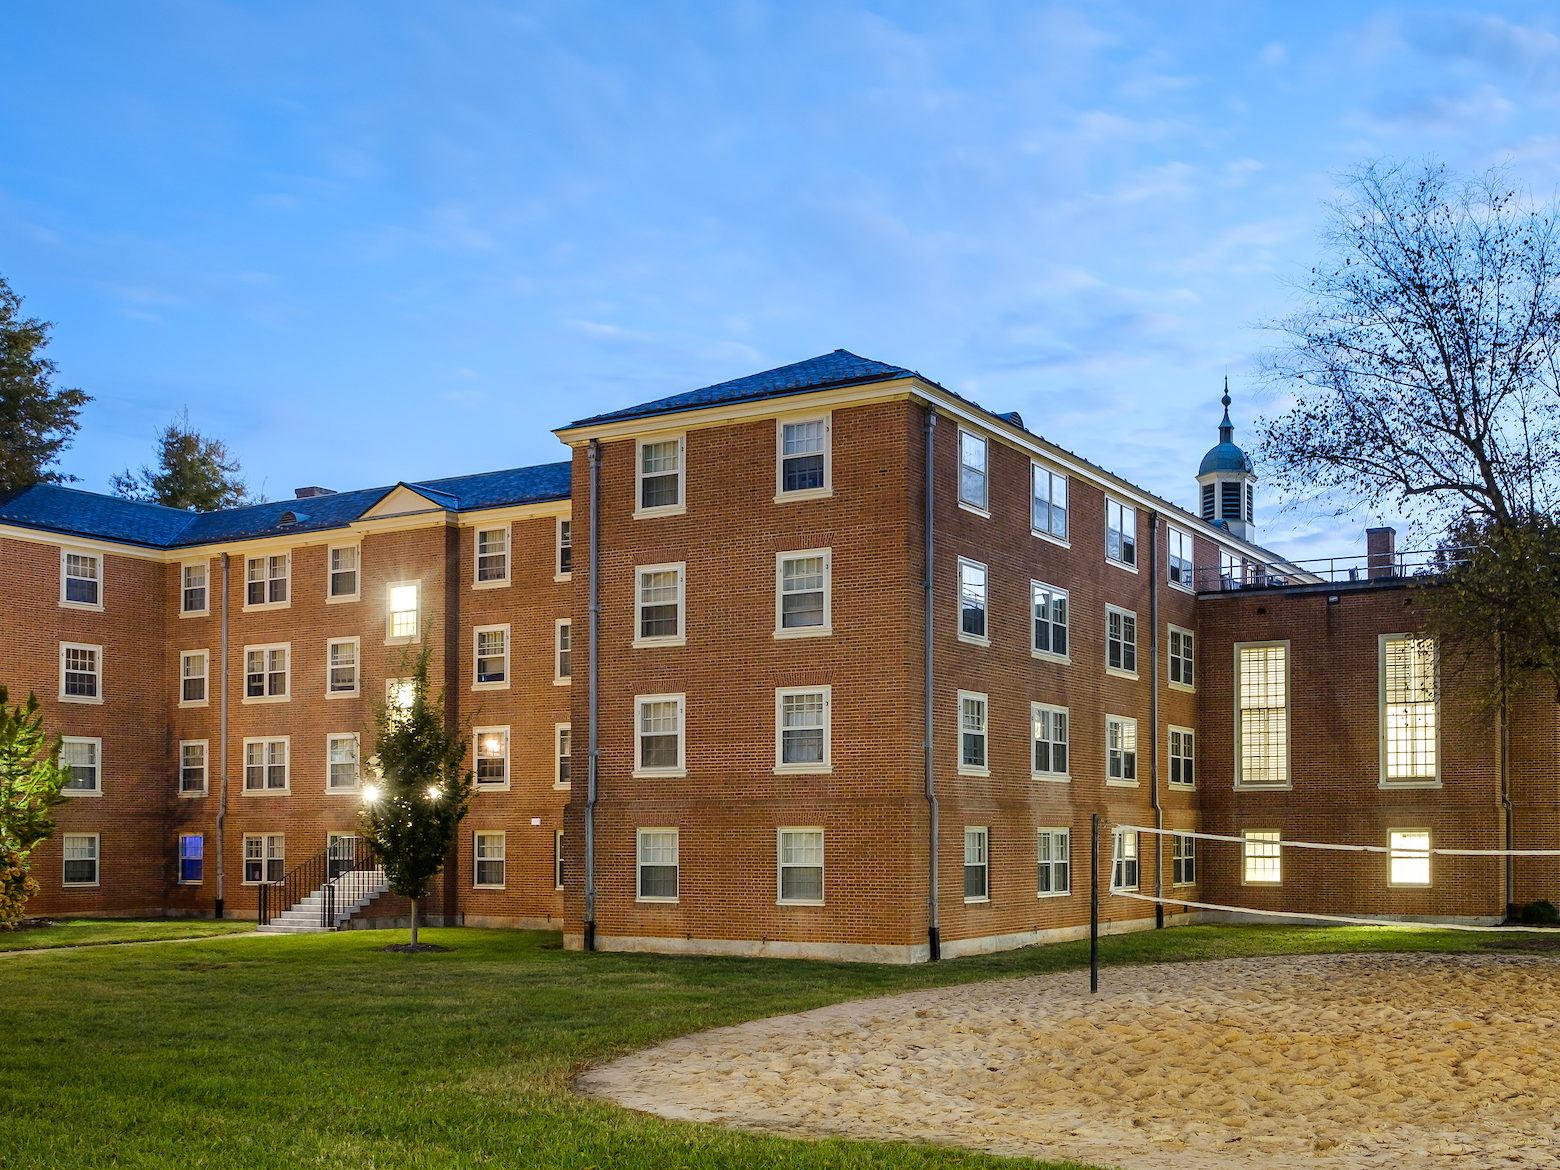 Volleyball court and rear view of Johnson residence hall